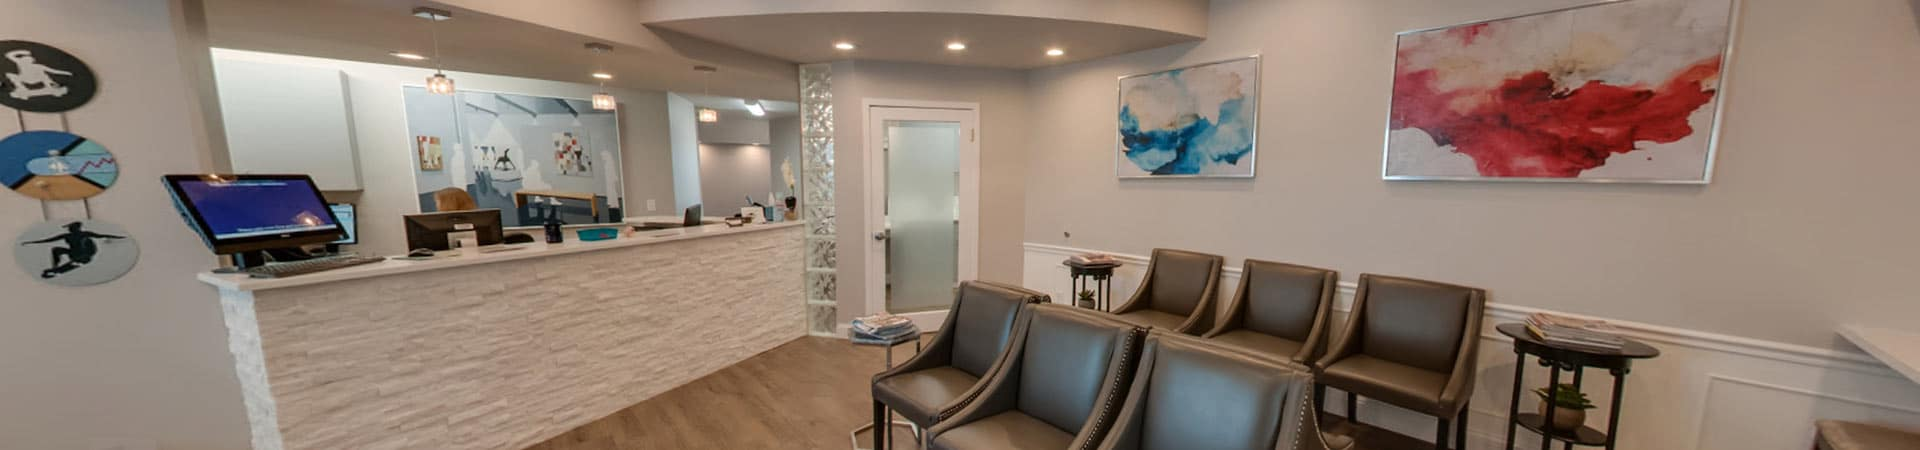 Loveland Office Waiting Area at Northeast Orthodontic Specialists in Loveland Cincinnati OH